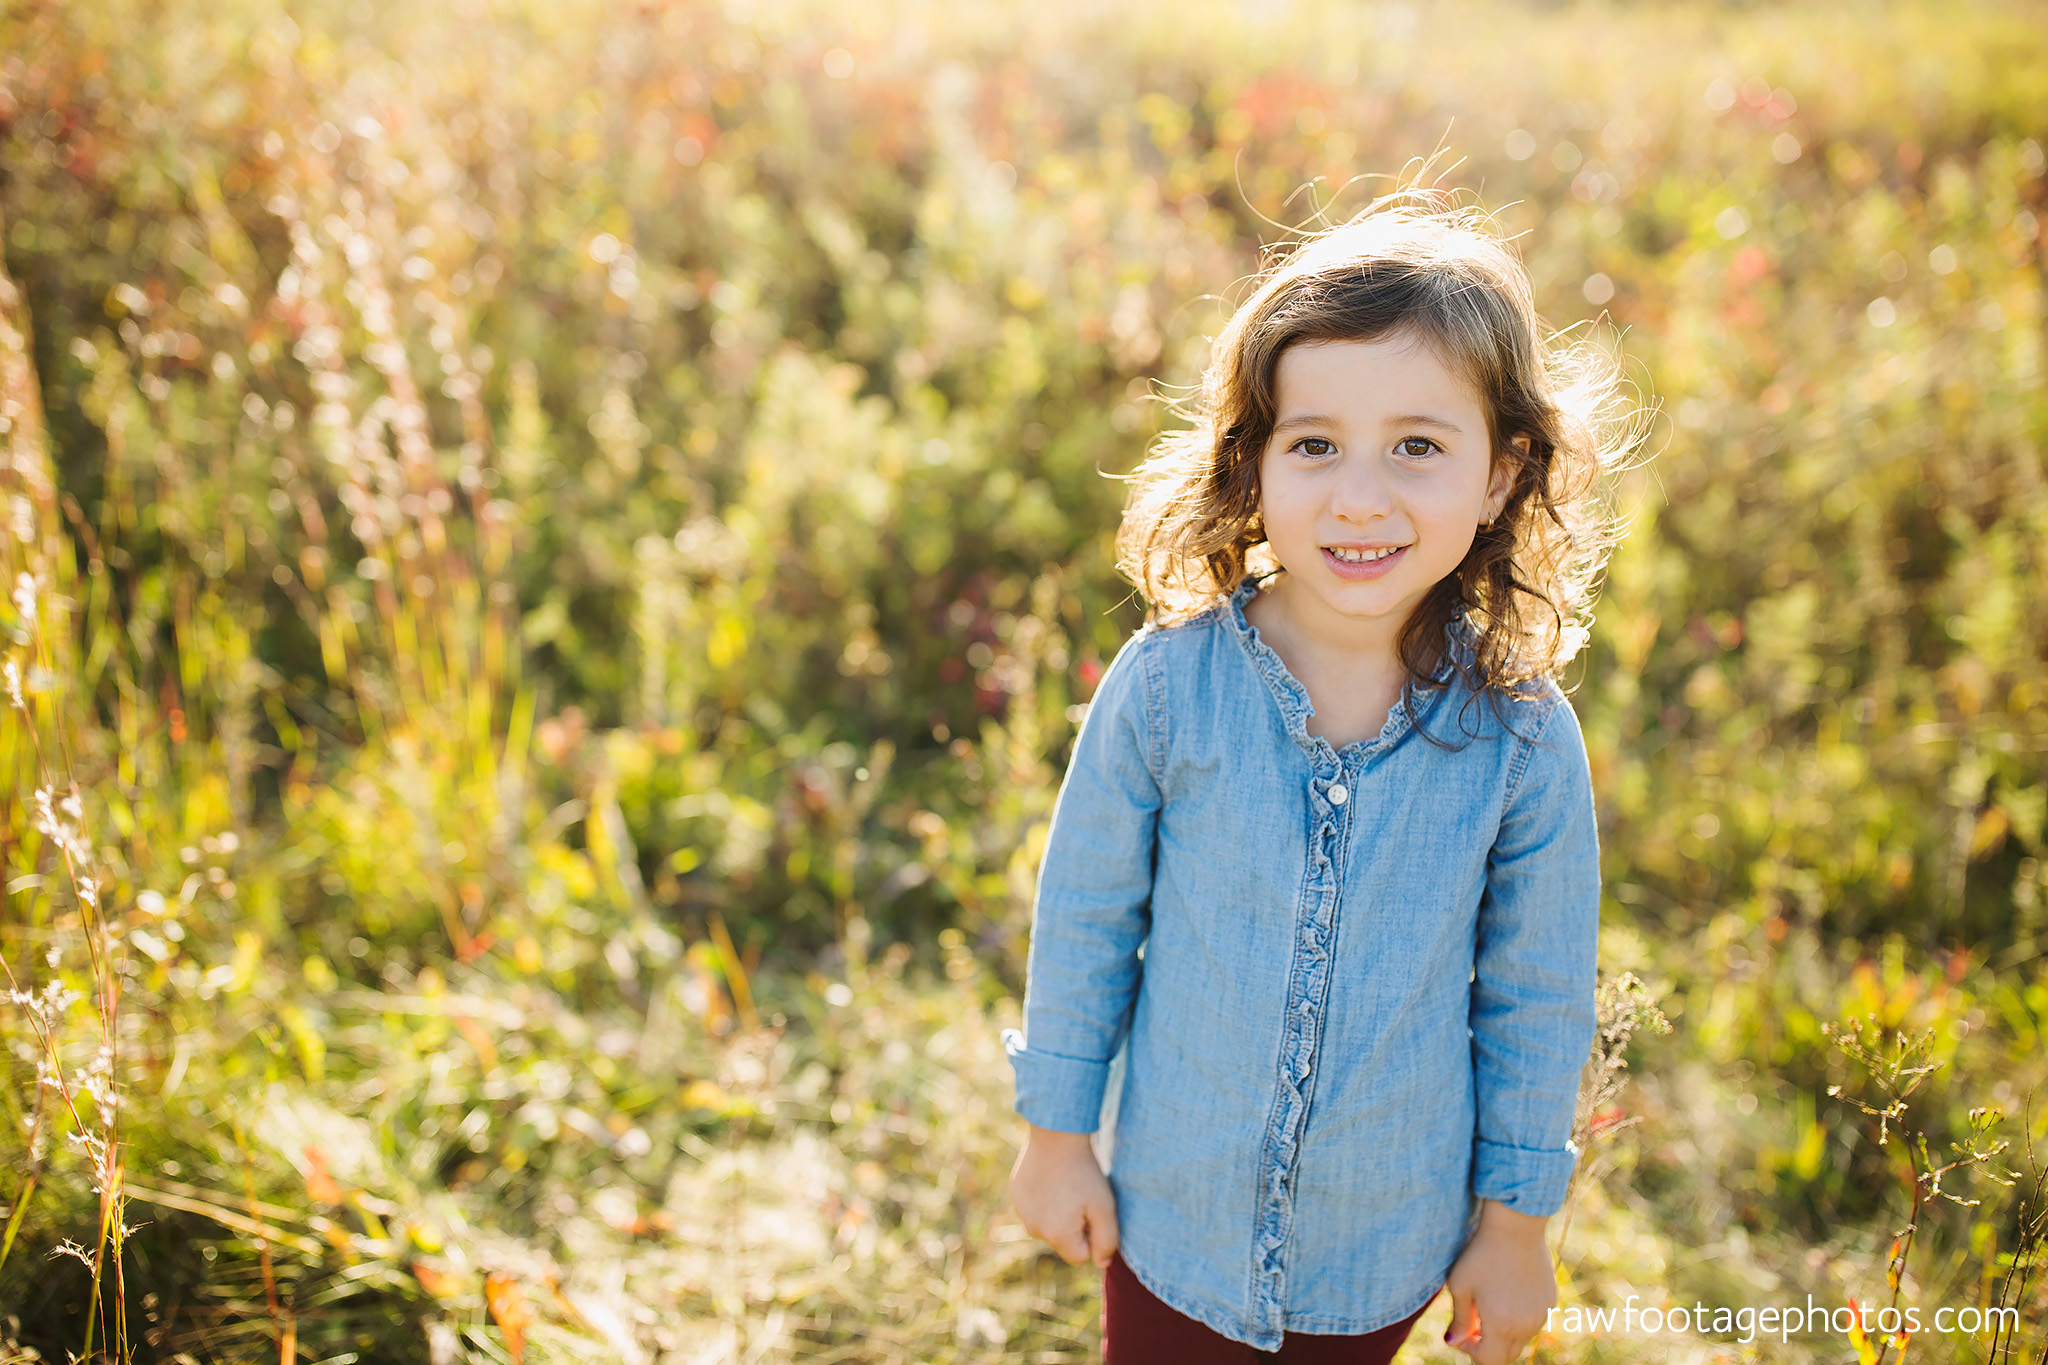 london_ontario_family_photographer-golden_hour_maternity_session-raw_footage_photography018.jpg